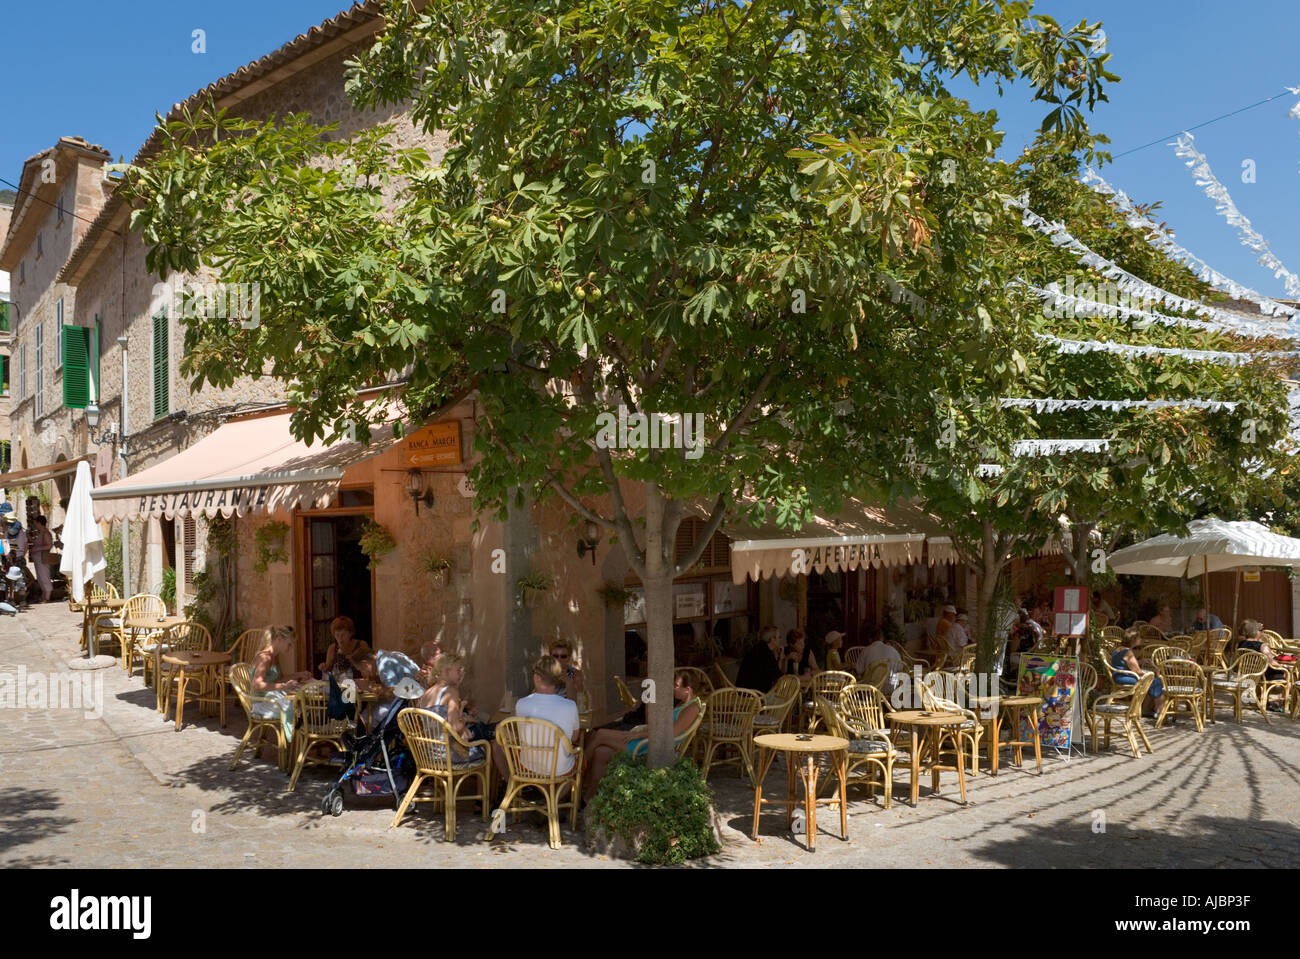 Cafe in the old town centre, Valldemossa, West Coast, Mallorca, Spain - Stock Image